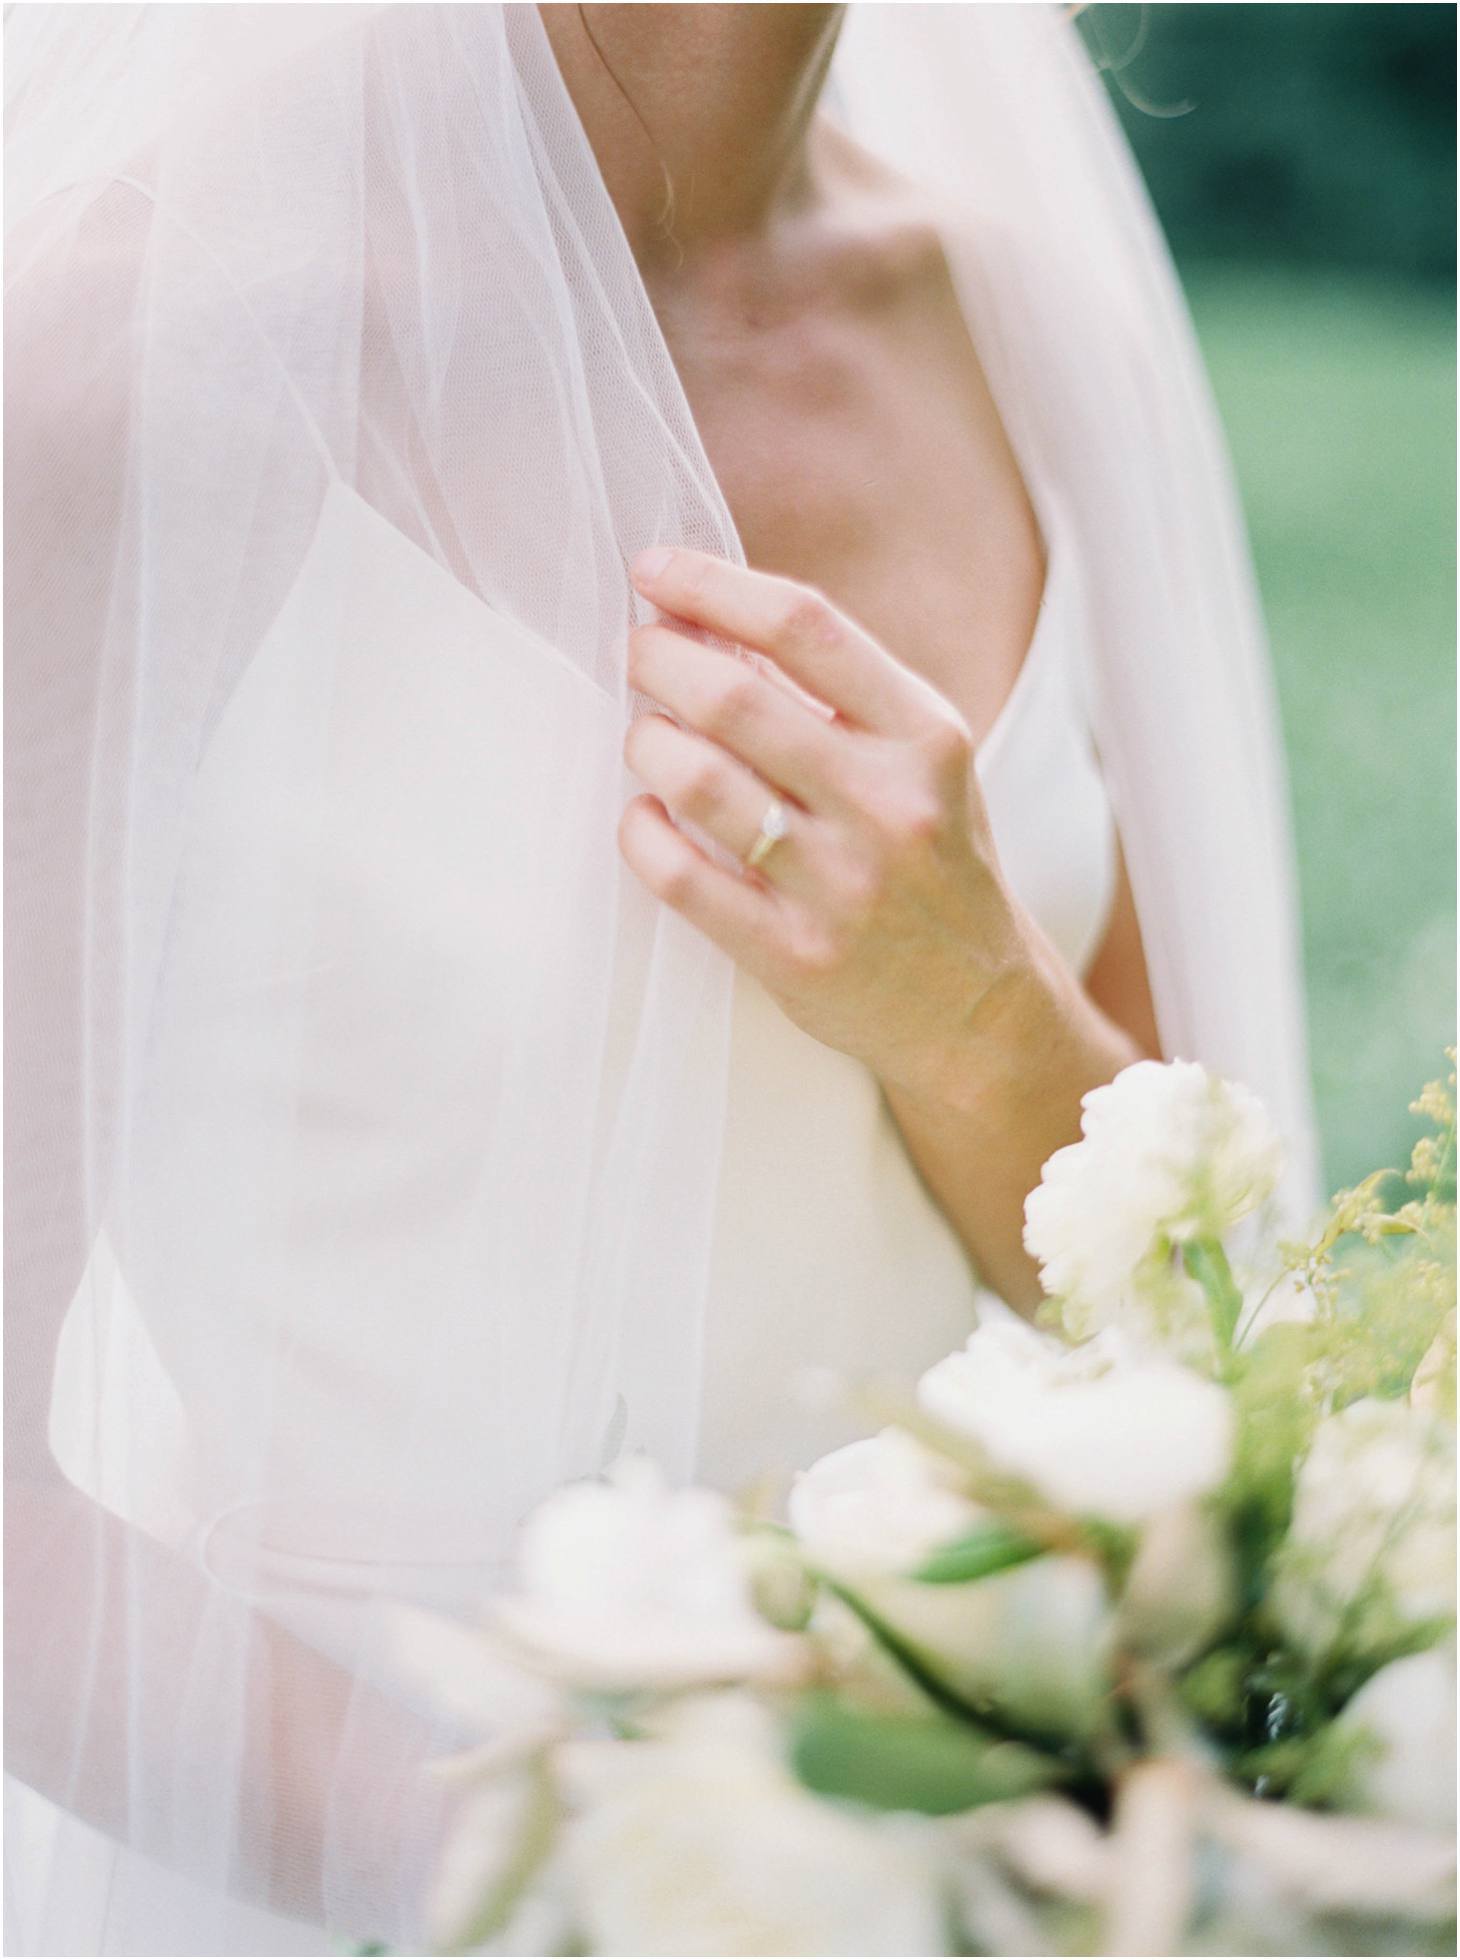 kim-stockwell-photography-fine-art-film-bridals-richmond-va-peyton_0879